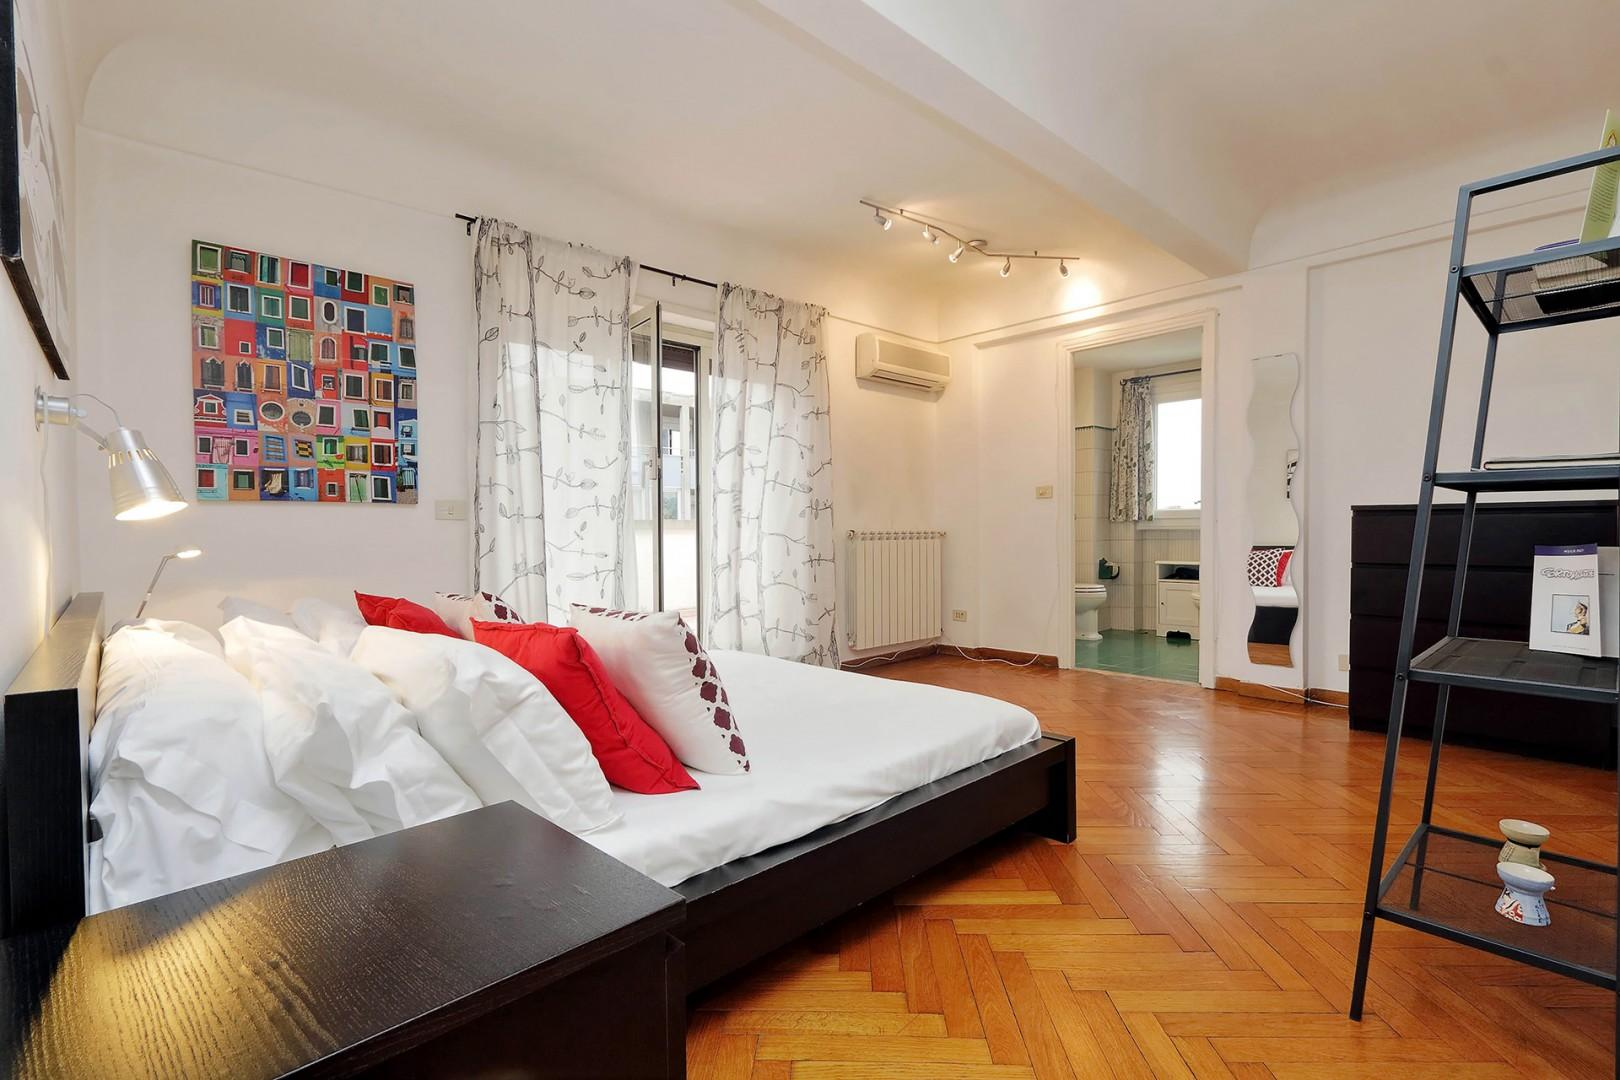 Bedroom 2 is very large and also accommodates a foldaway single bed.